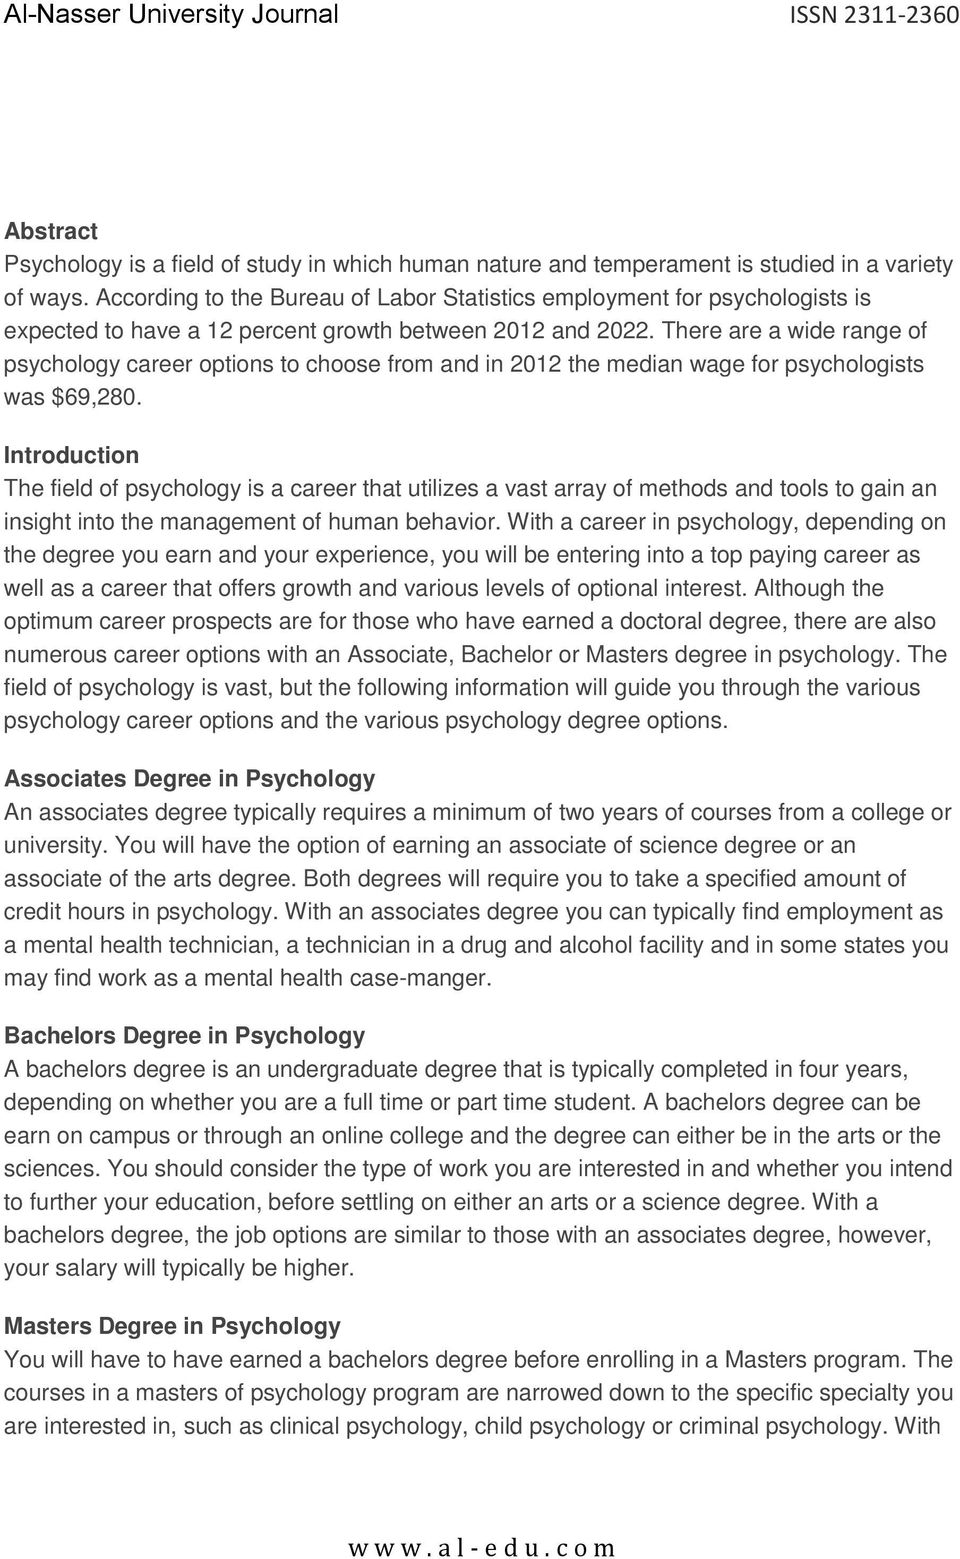 There are a wide range of psychology career options to choose from and in 2012 the median wage for psychologists was $69,280.